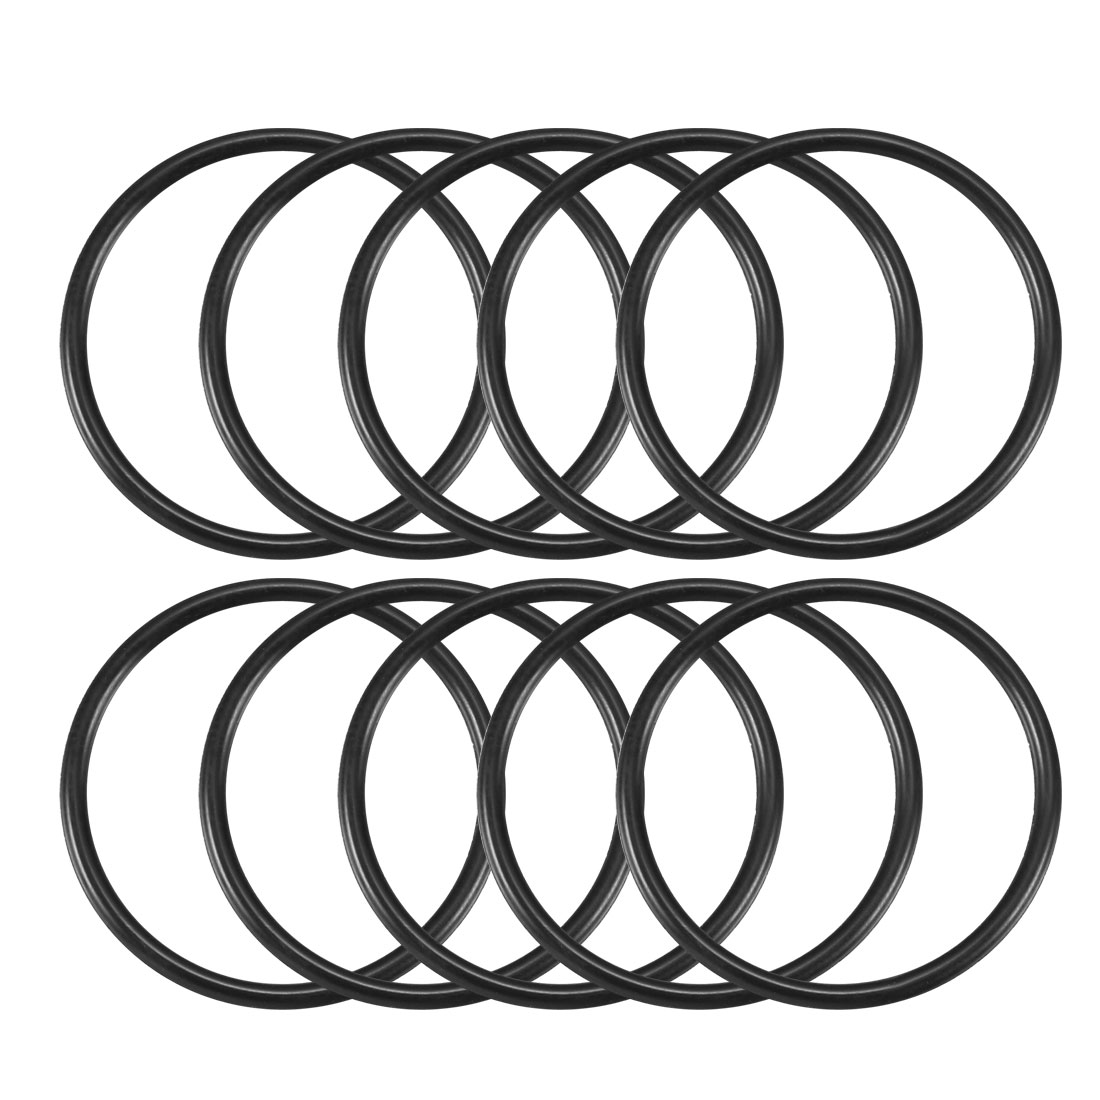 10 Pcs Black Rubber O Ring Oil Sealing Gasket Washer 25mm x 22mm x 1.5mm